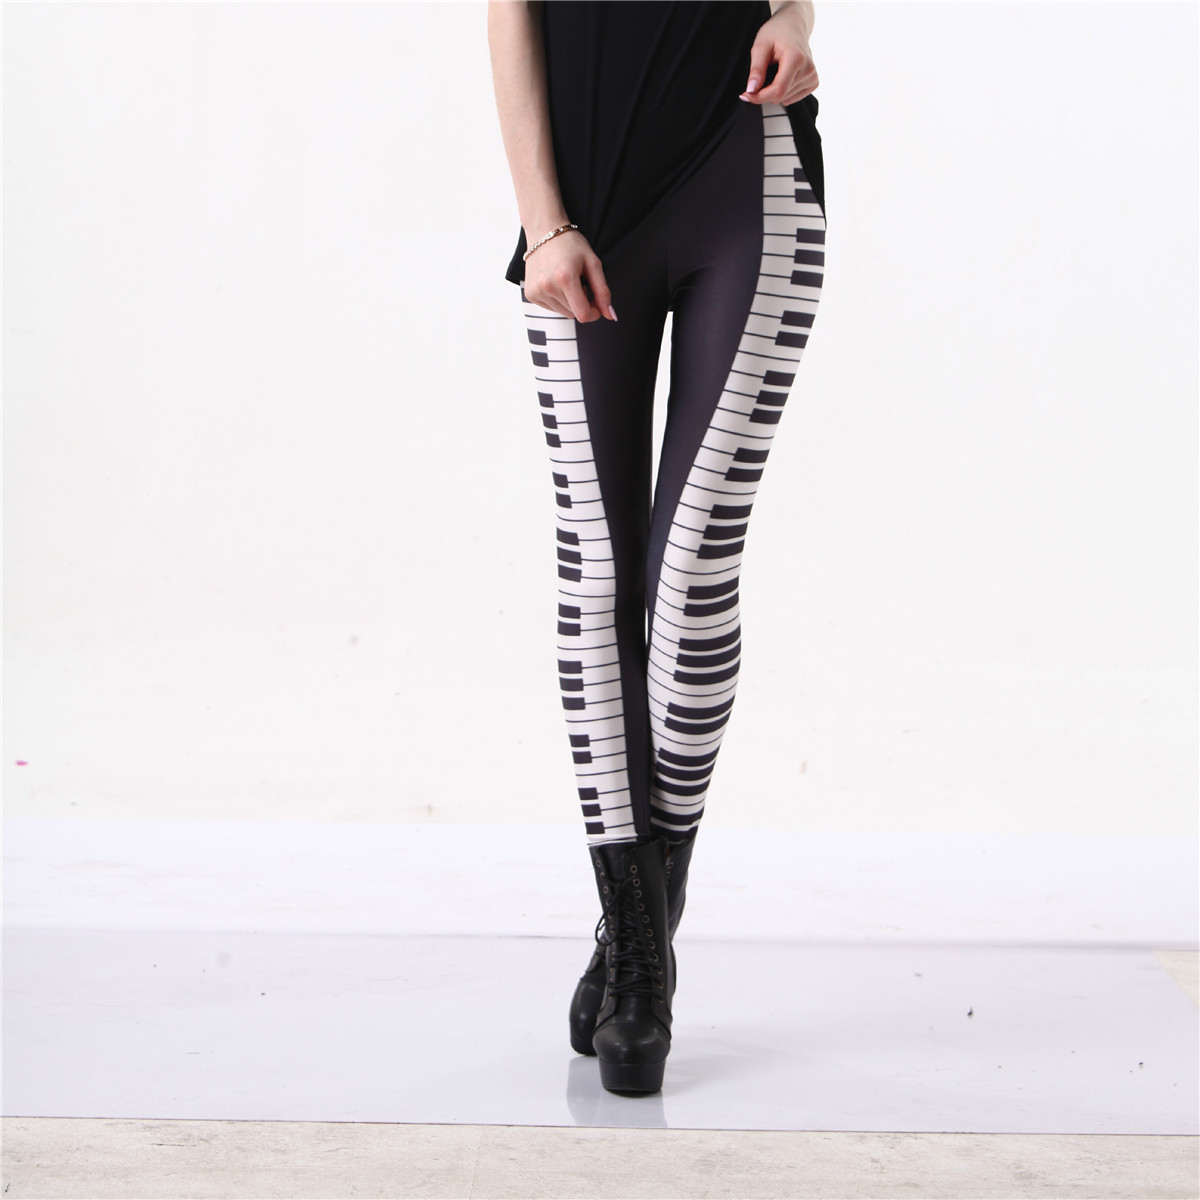 Piano Leggings Sort Hvid Stripe Sexet Leg Hot 3D Grafisk Trykt Musik Keys Fitness Leggings Bukser Gymwear Funky Capris S-4XL